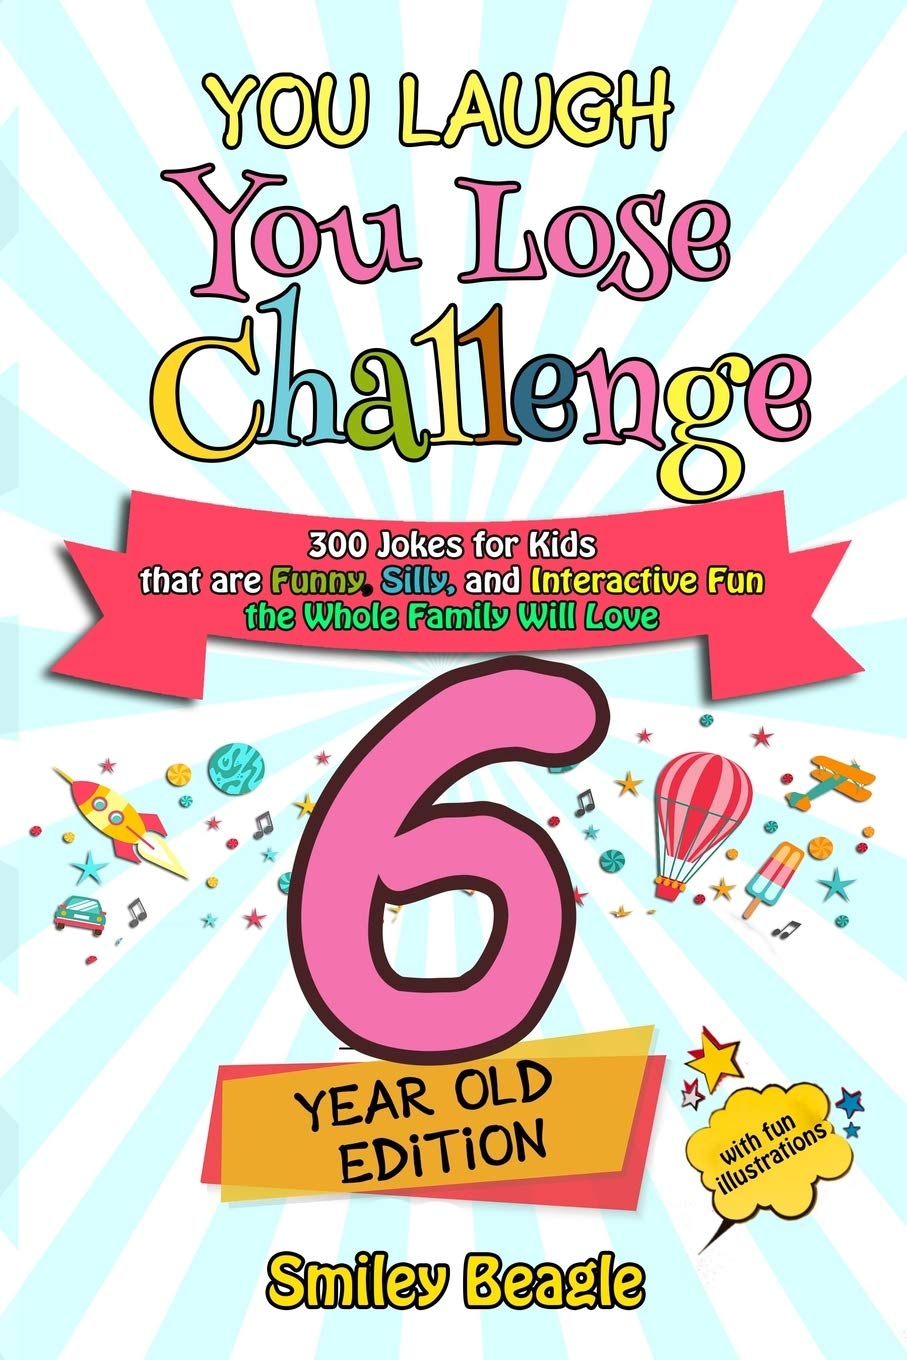 You Laugh You Lose Challenge 6 Year Old Edition 300 Jokes For